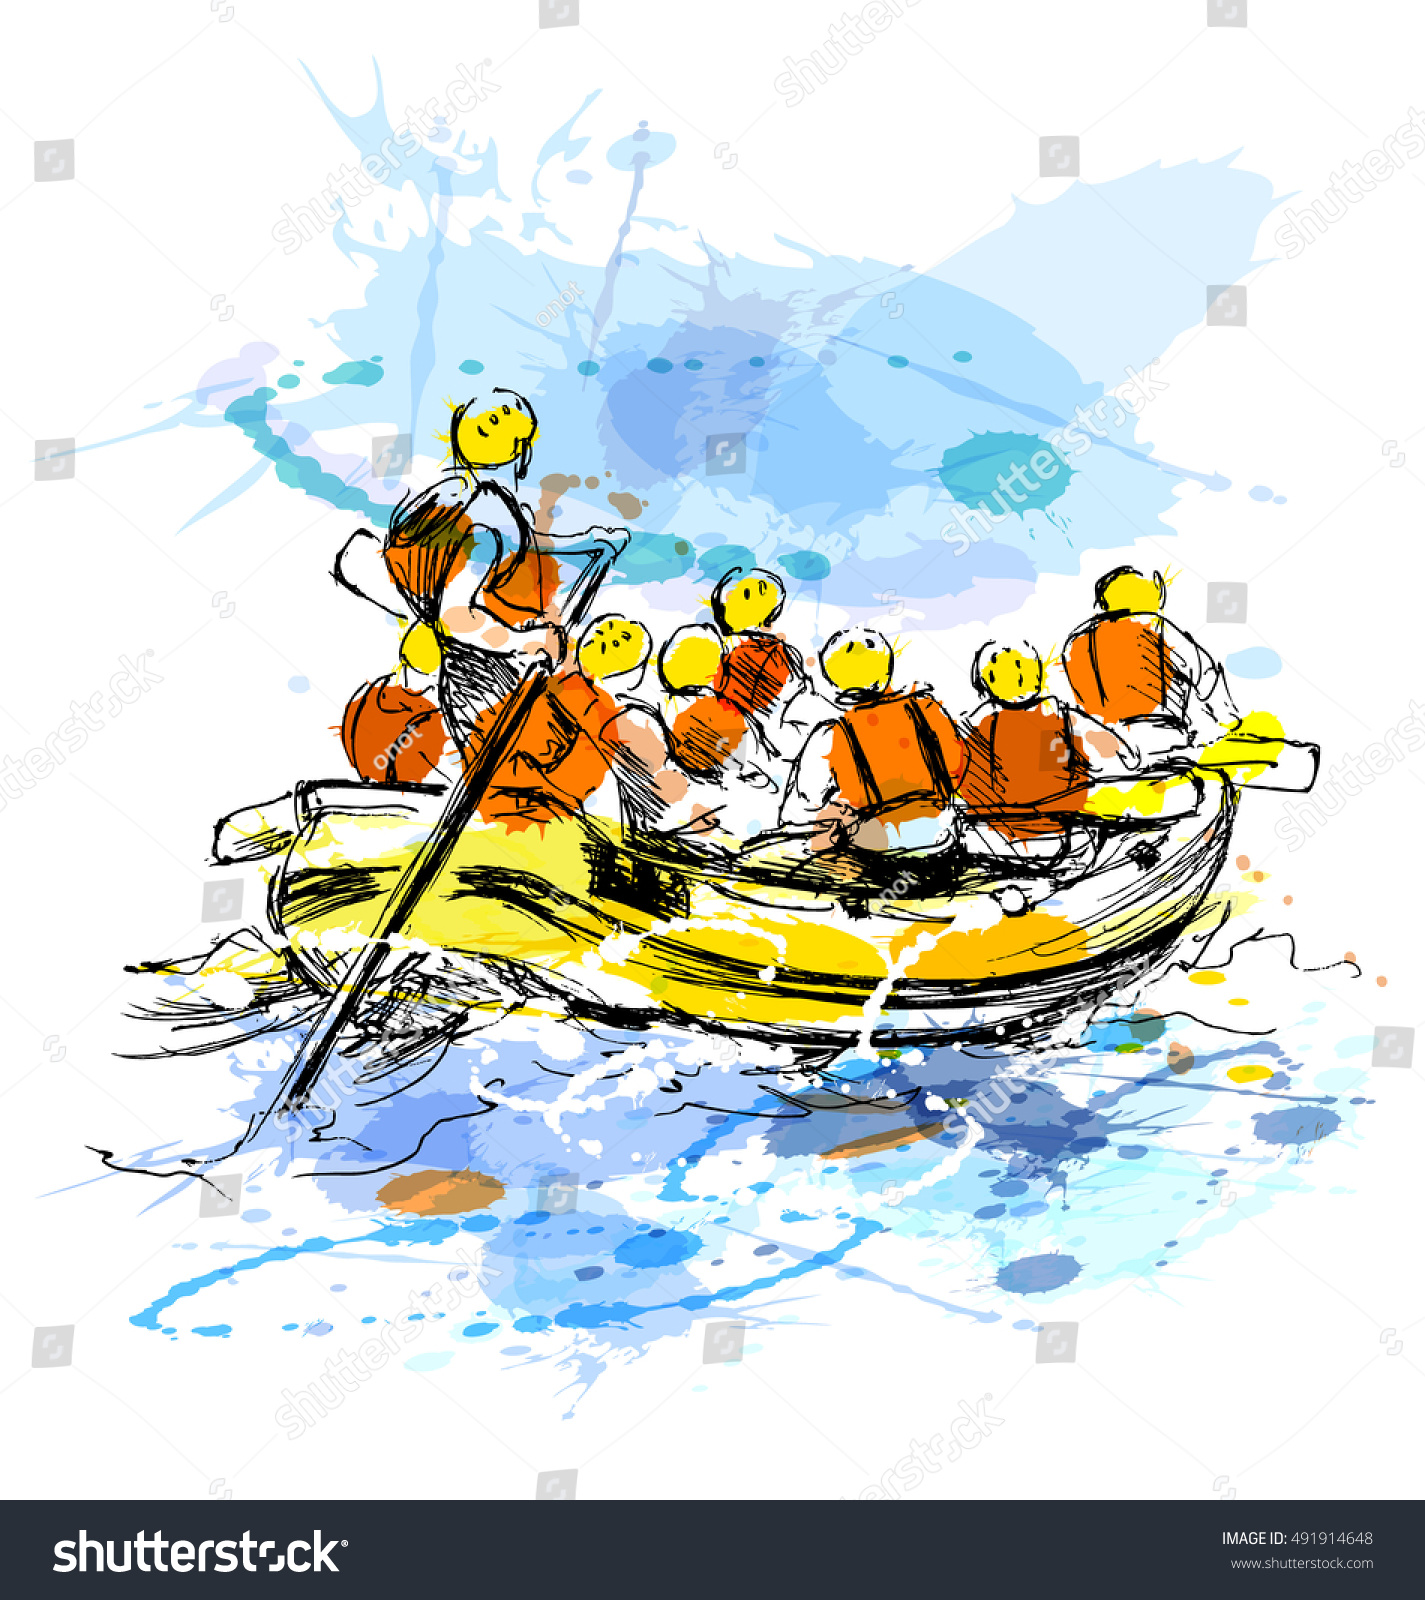 Rafting illustration